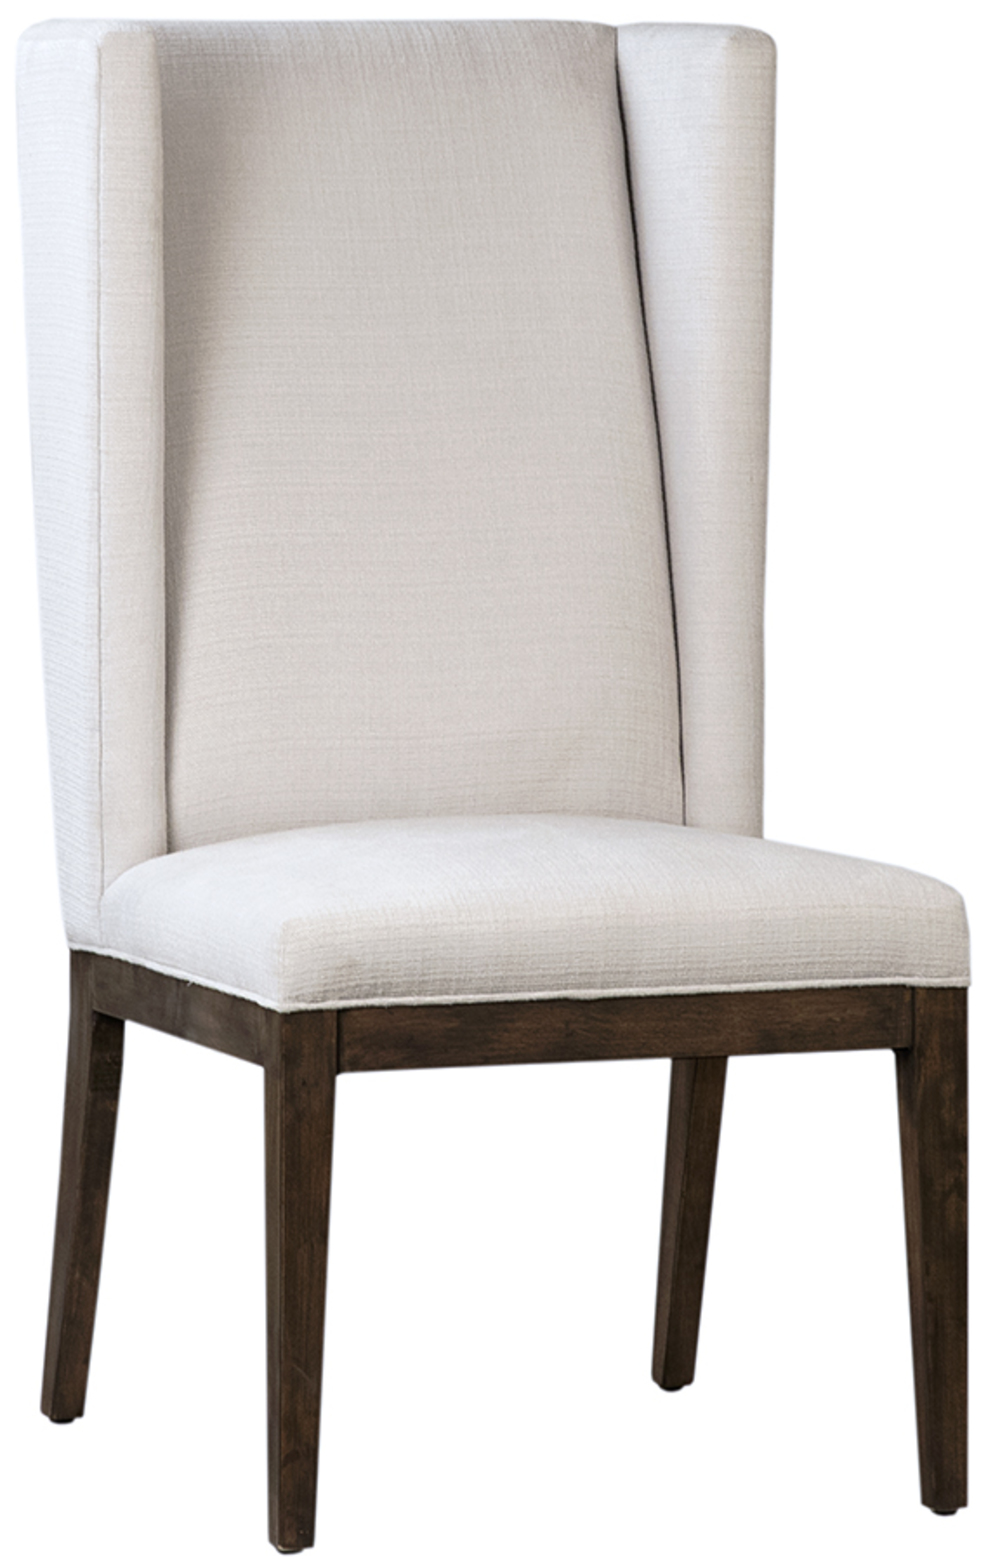 Dovetail Furniture - Buckner Dining Chair